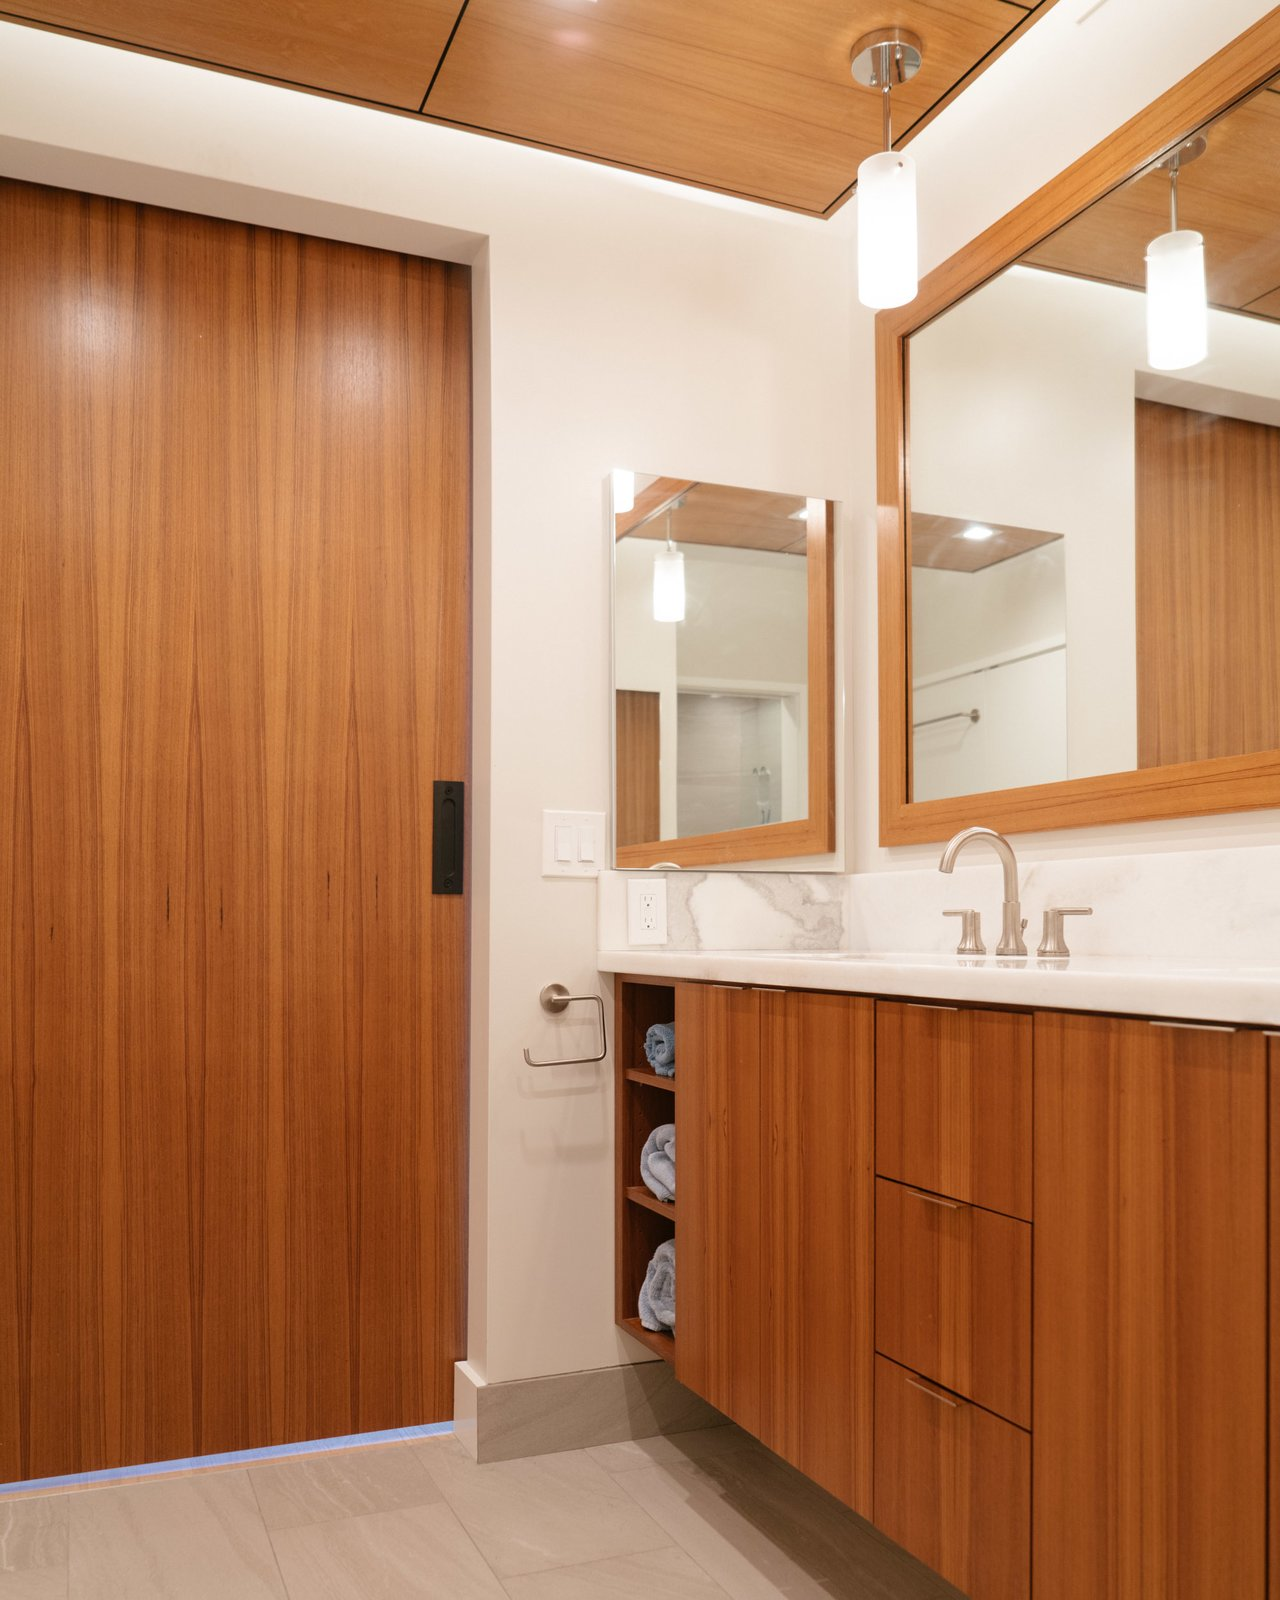 Bath Room, Undermount Sink, Granite Counter, and Ceramic Tile Floor  Scott Residence by District Architecture + Design